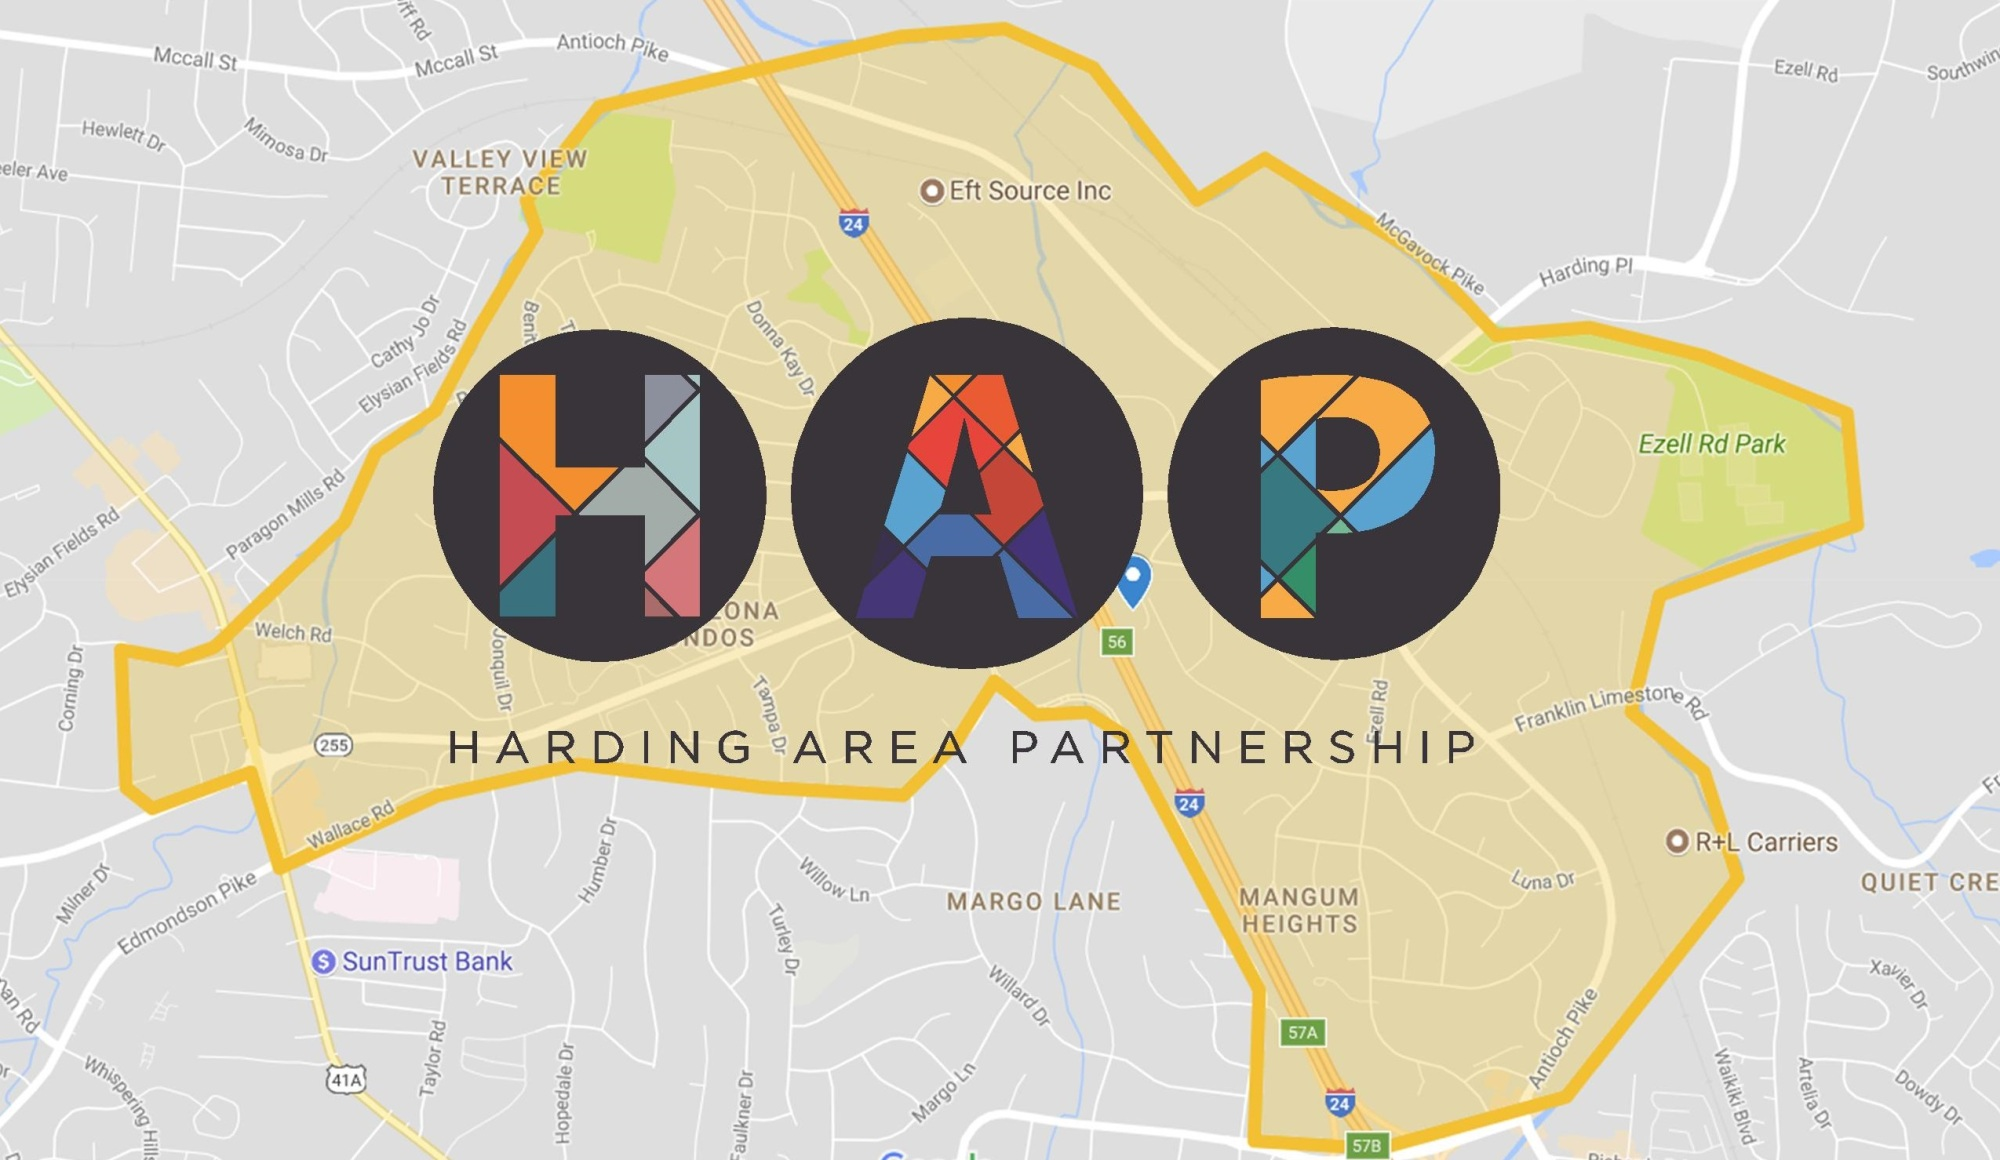 Harding Area Partnership Map